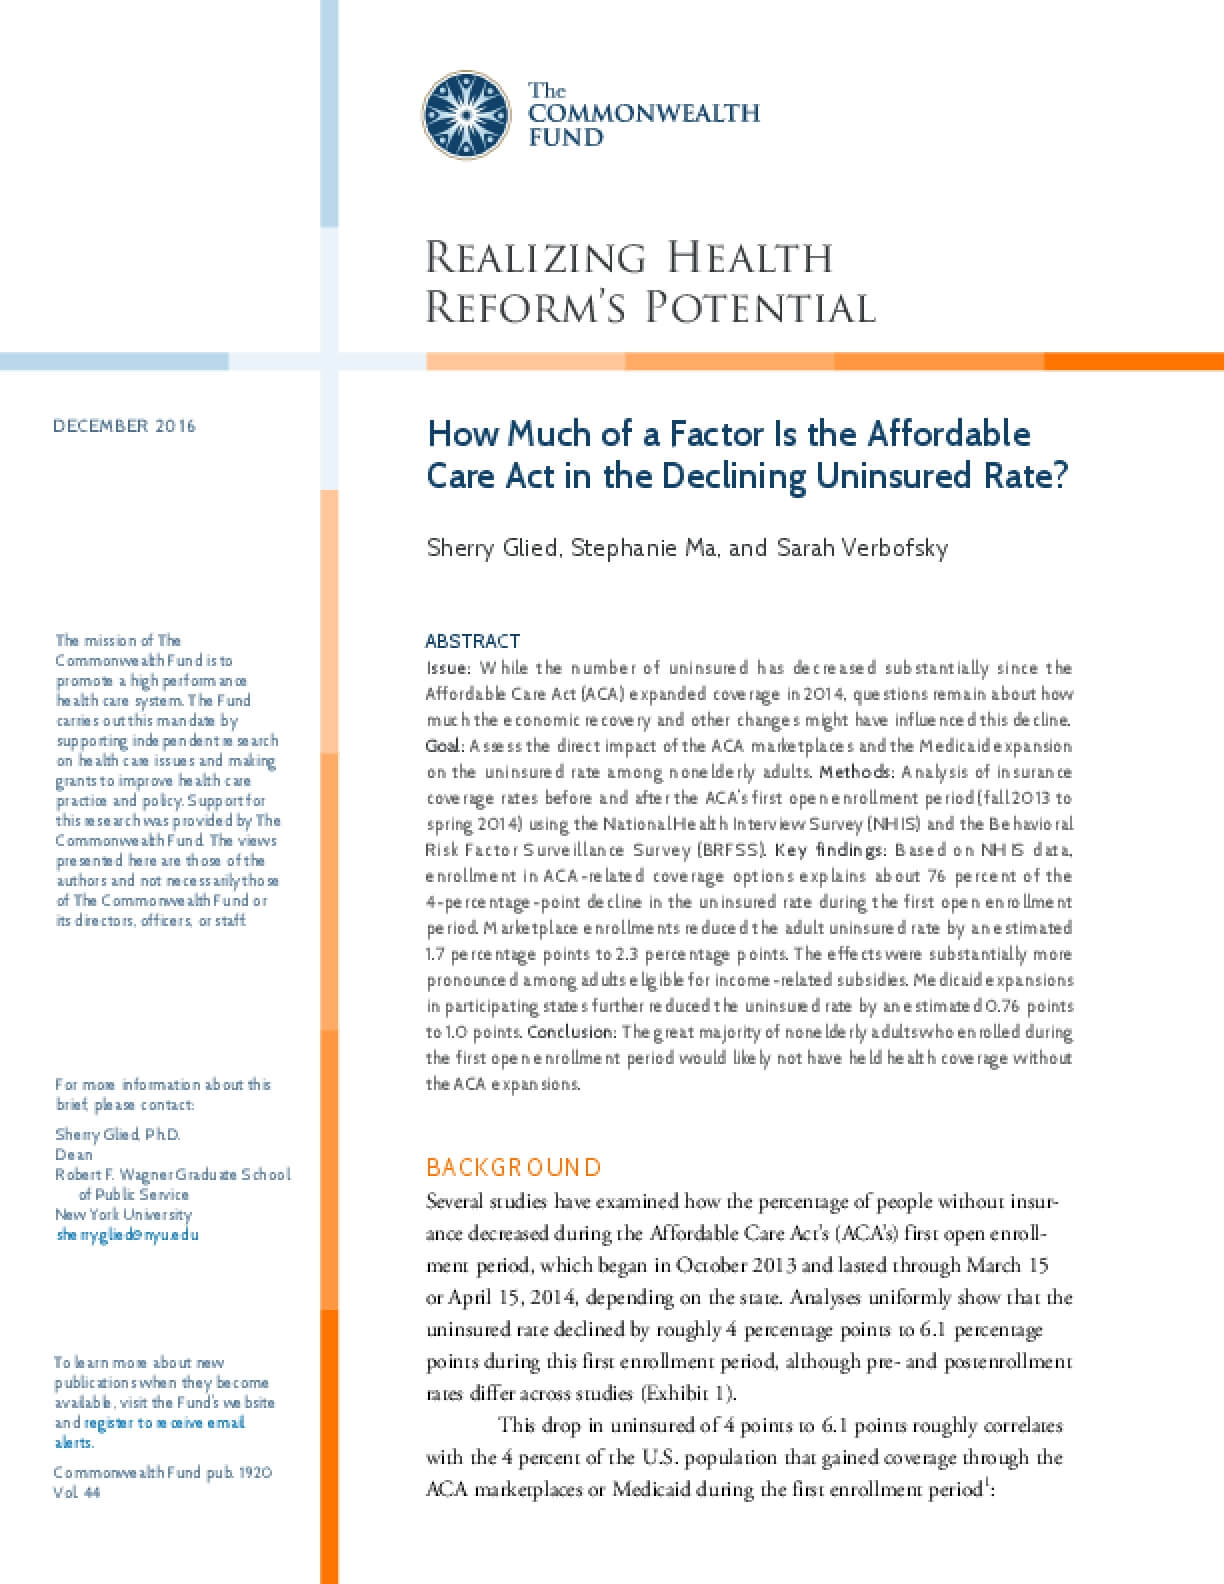 How Much of a Factor Is the Affordable Care Act in the Declining Uninsured Rate?